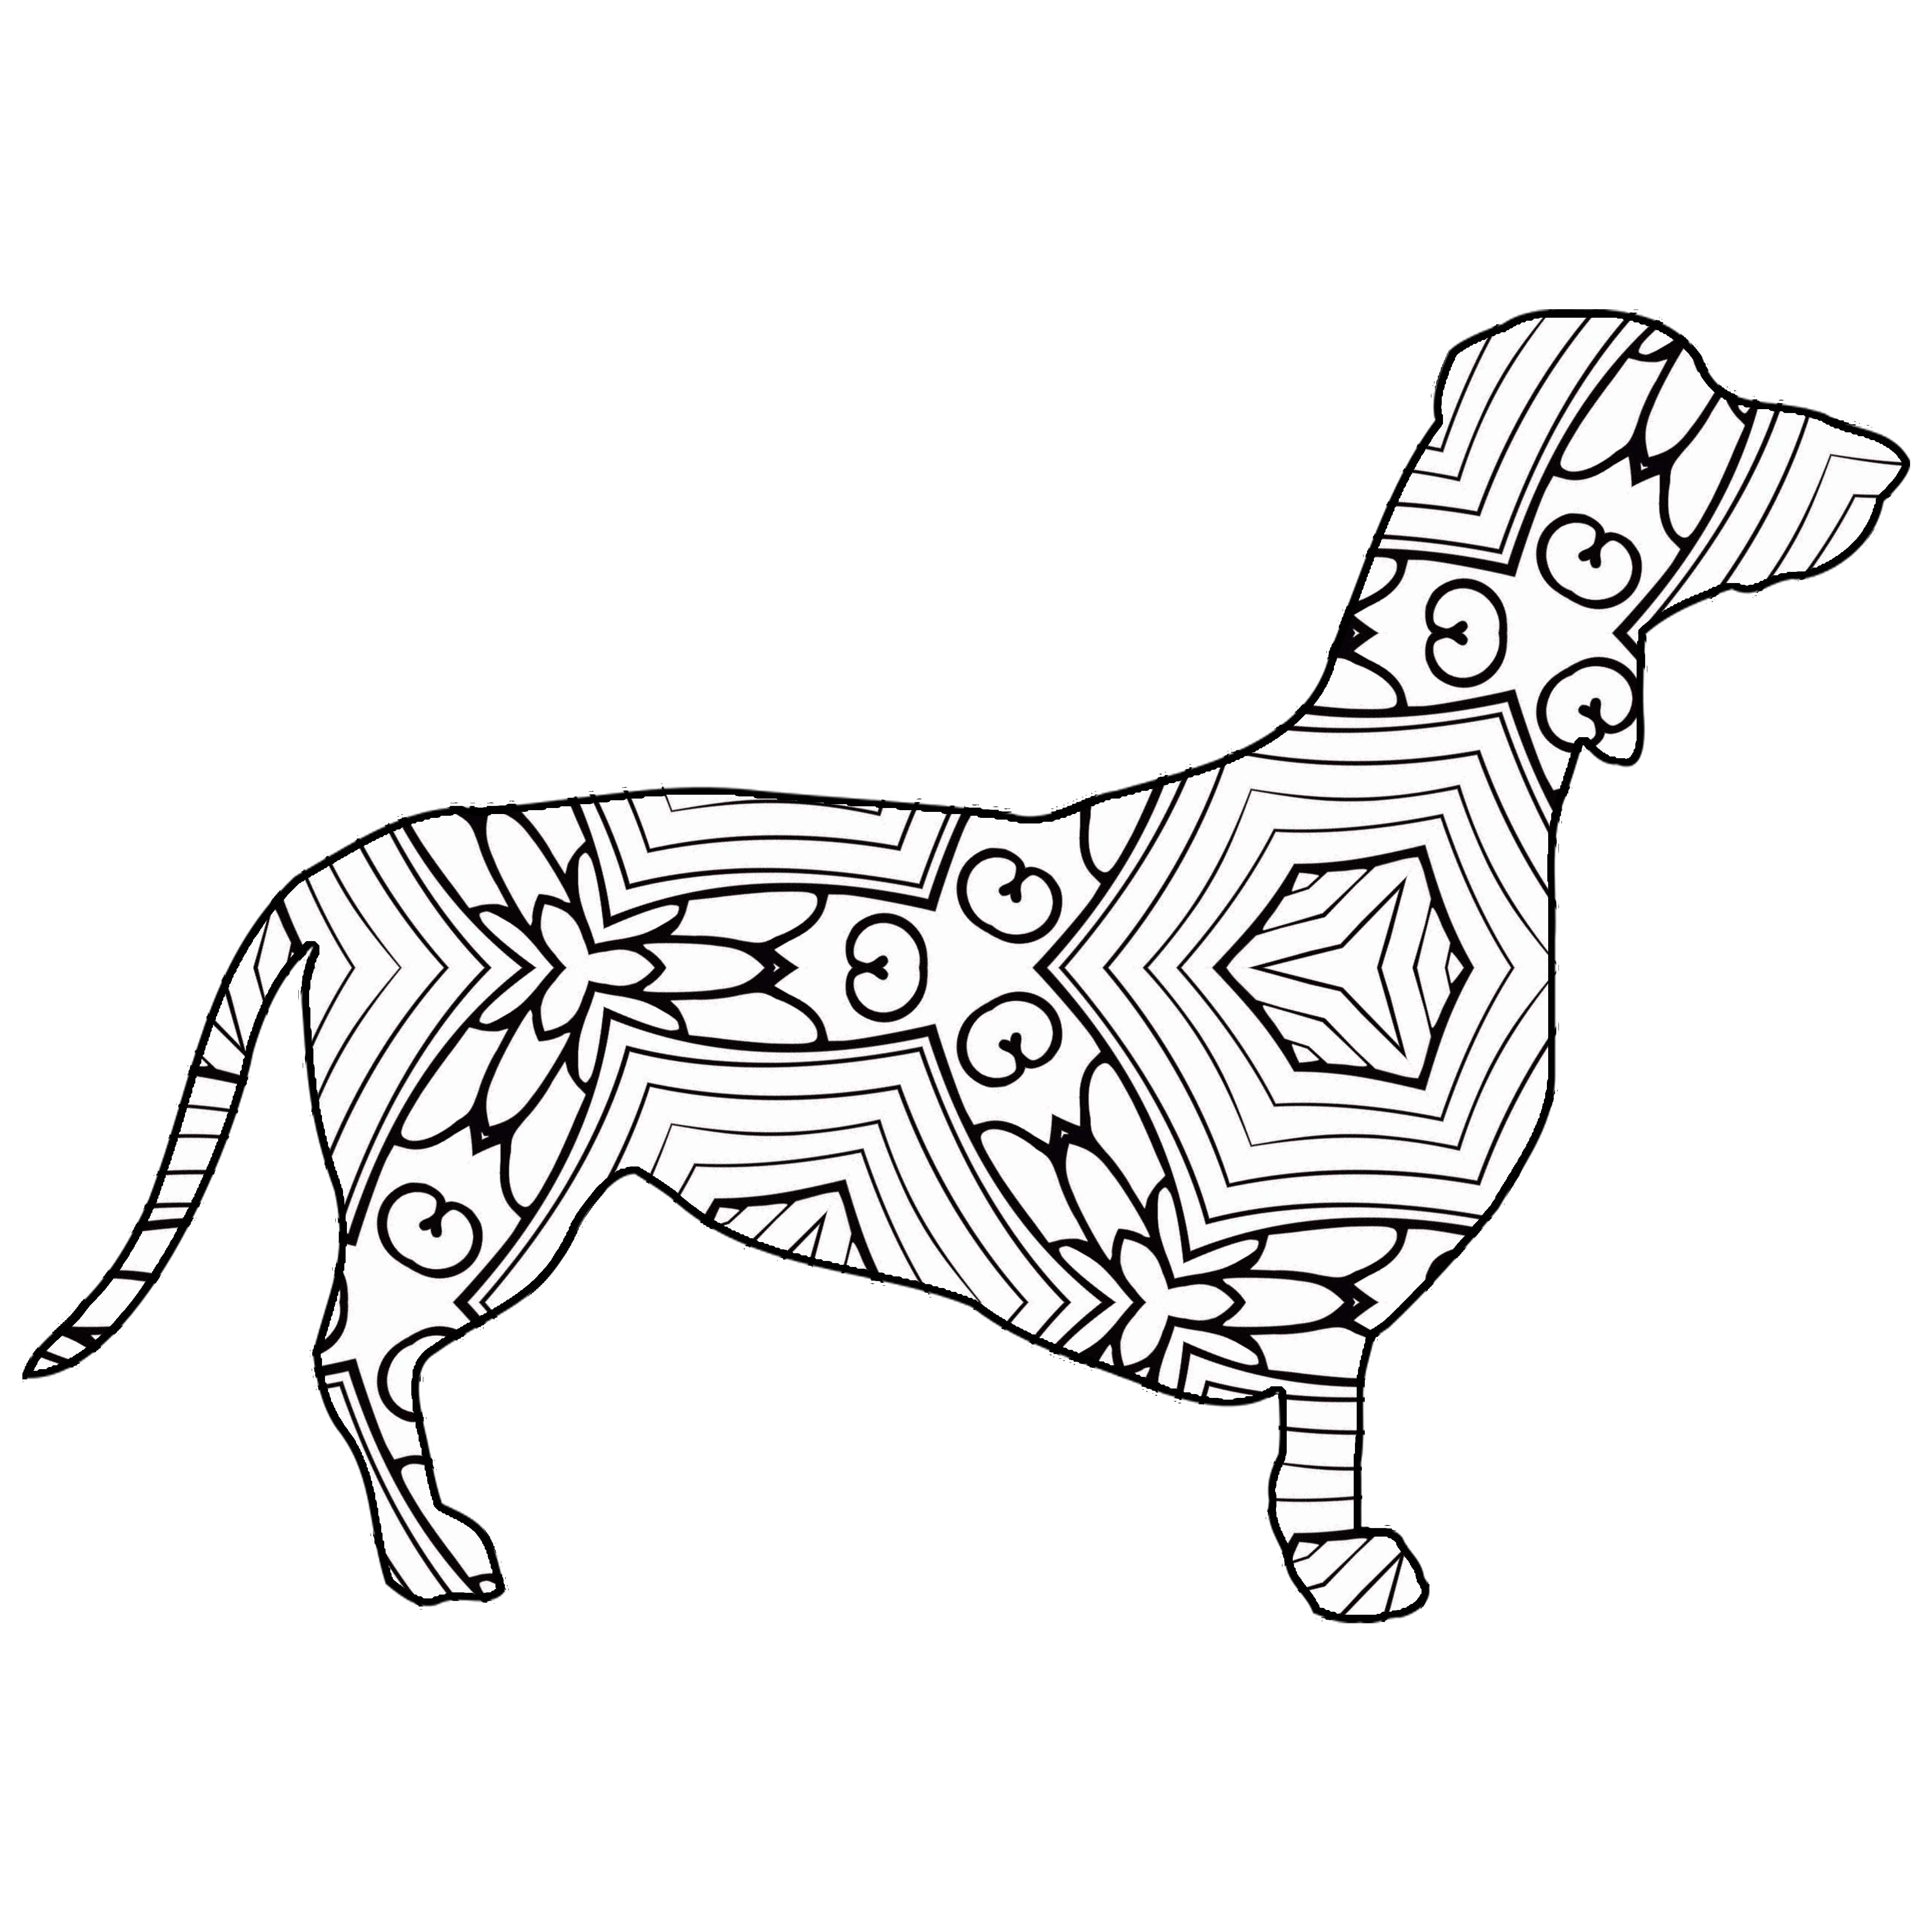 4500x4500 Best Of Free Coloring Pages A Geometric Animal Coloring Book